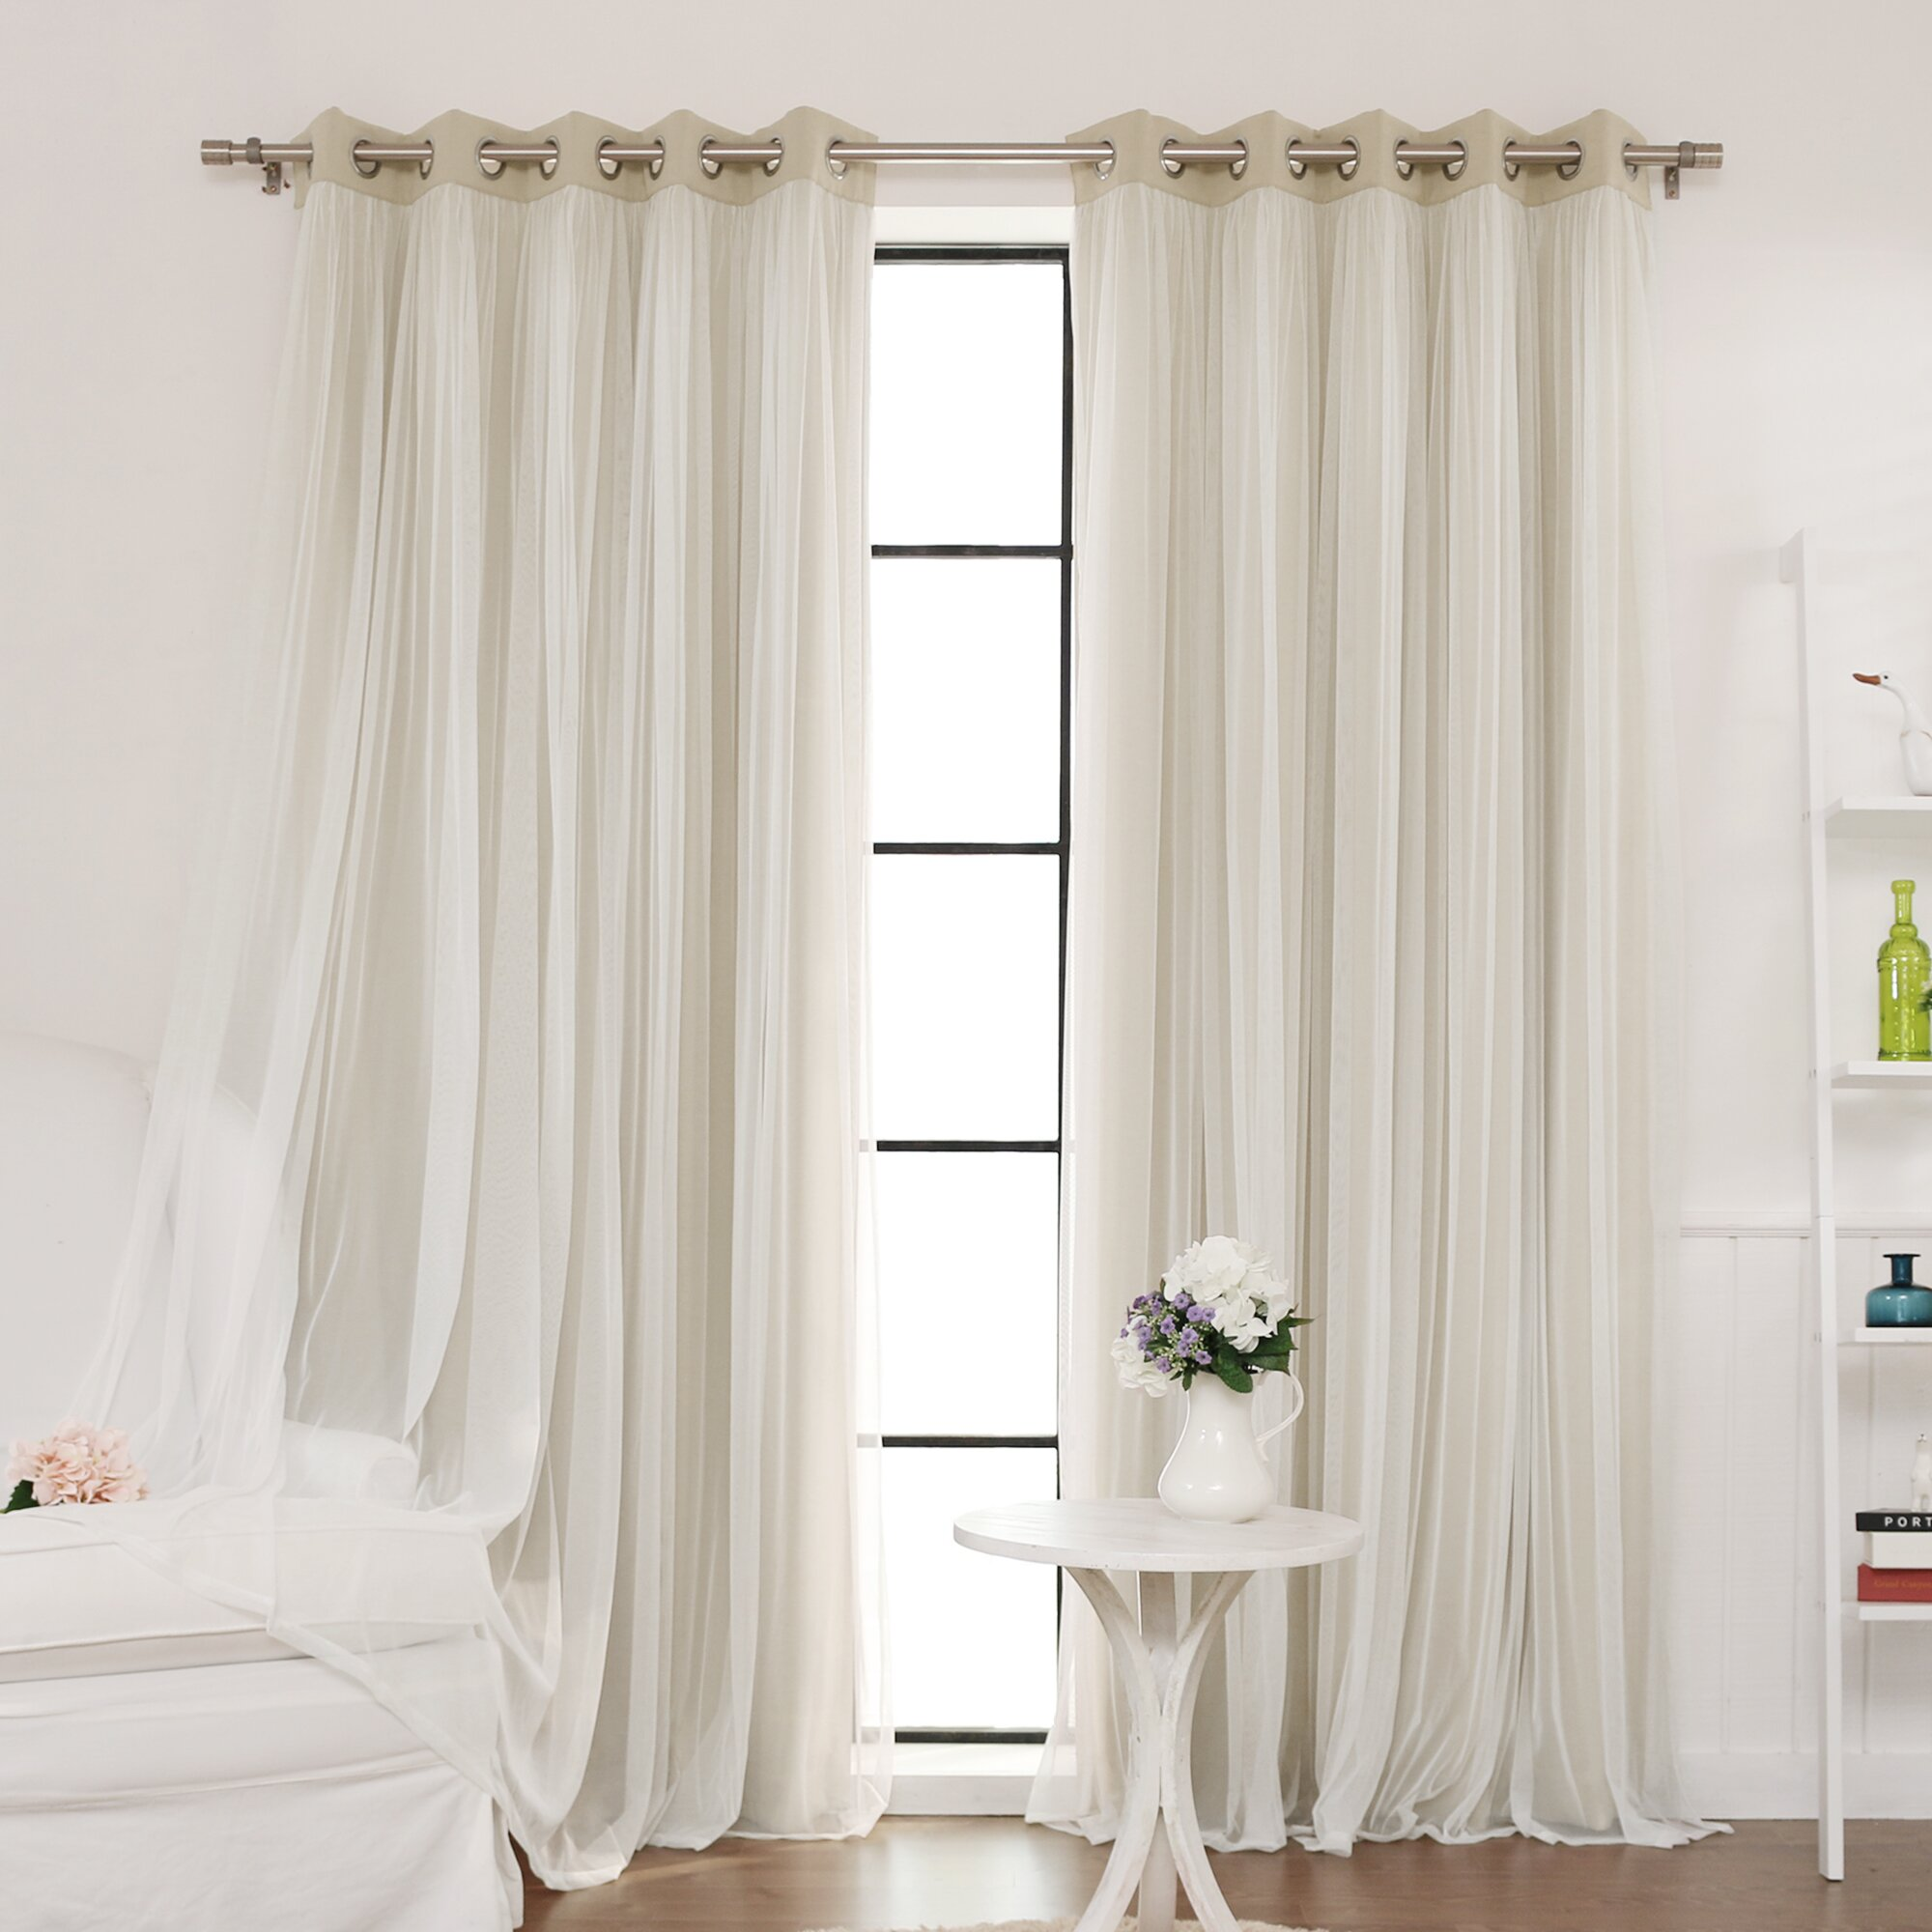 Best Home Fashion, Inc. Indoor Blackout Curtain Panel